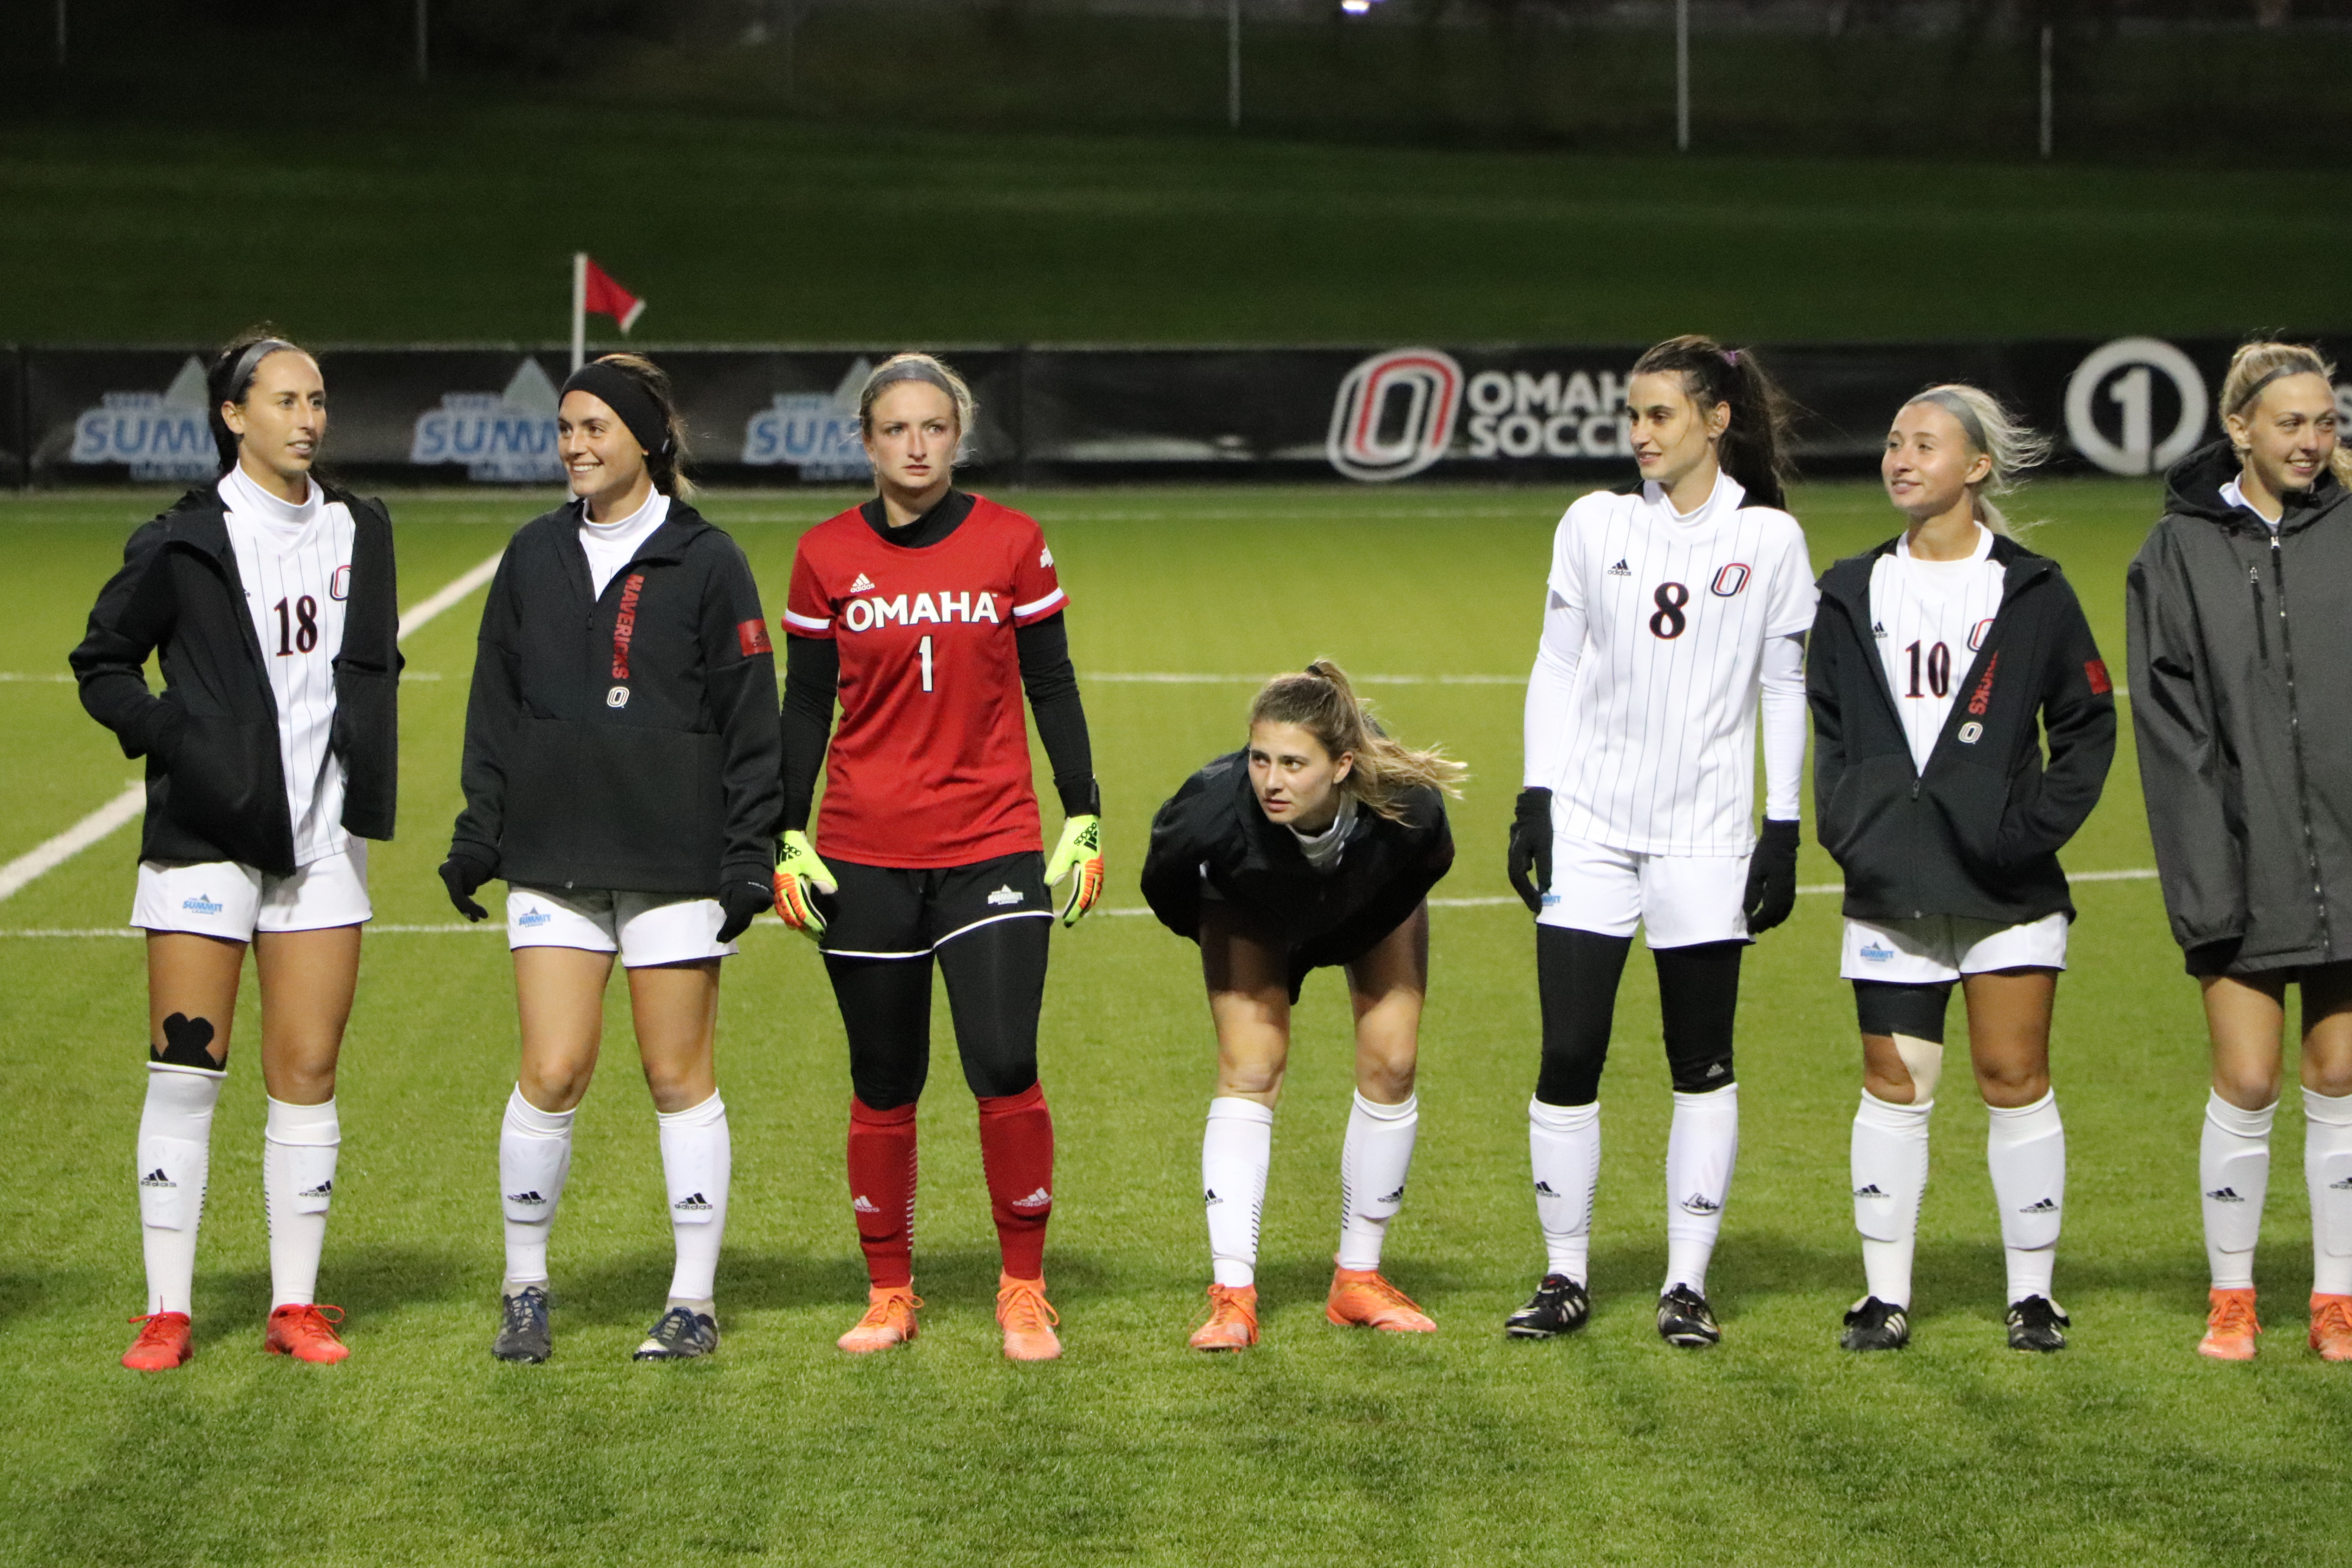 Omaha women's soccer players stand on the field before a match